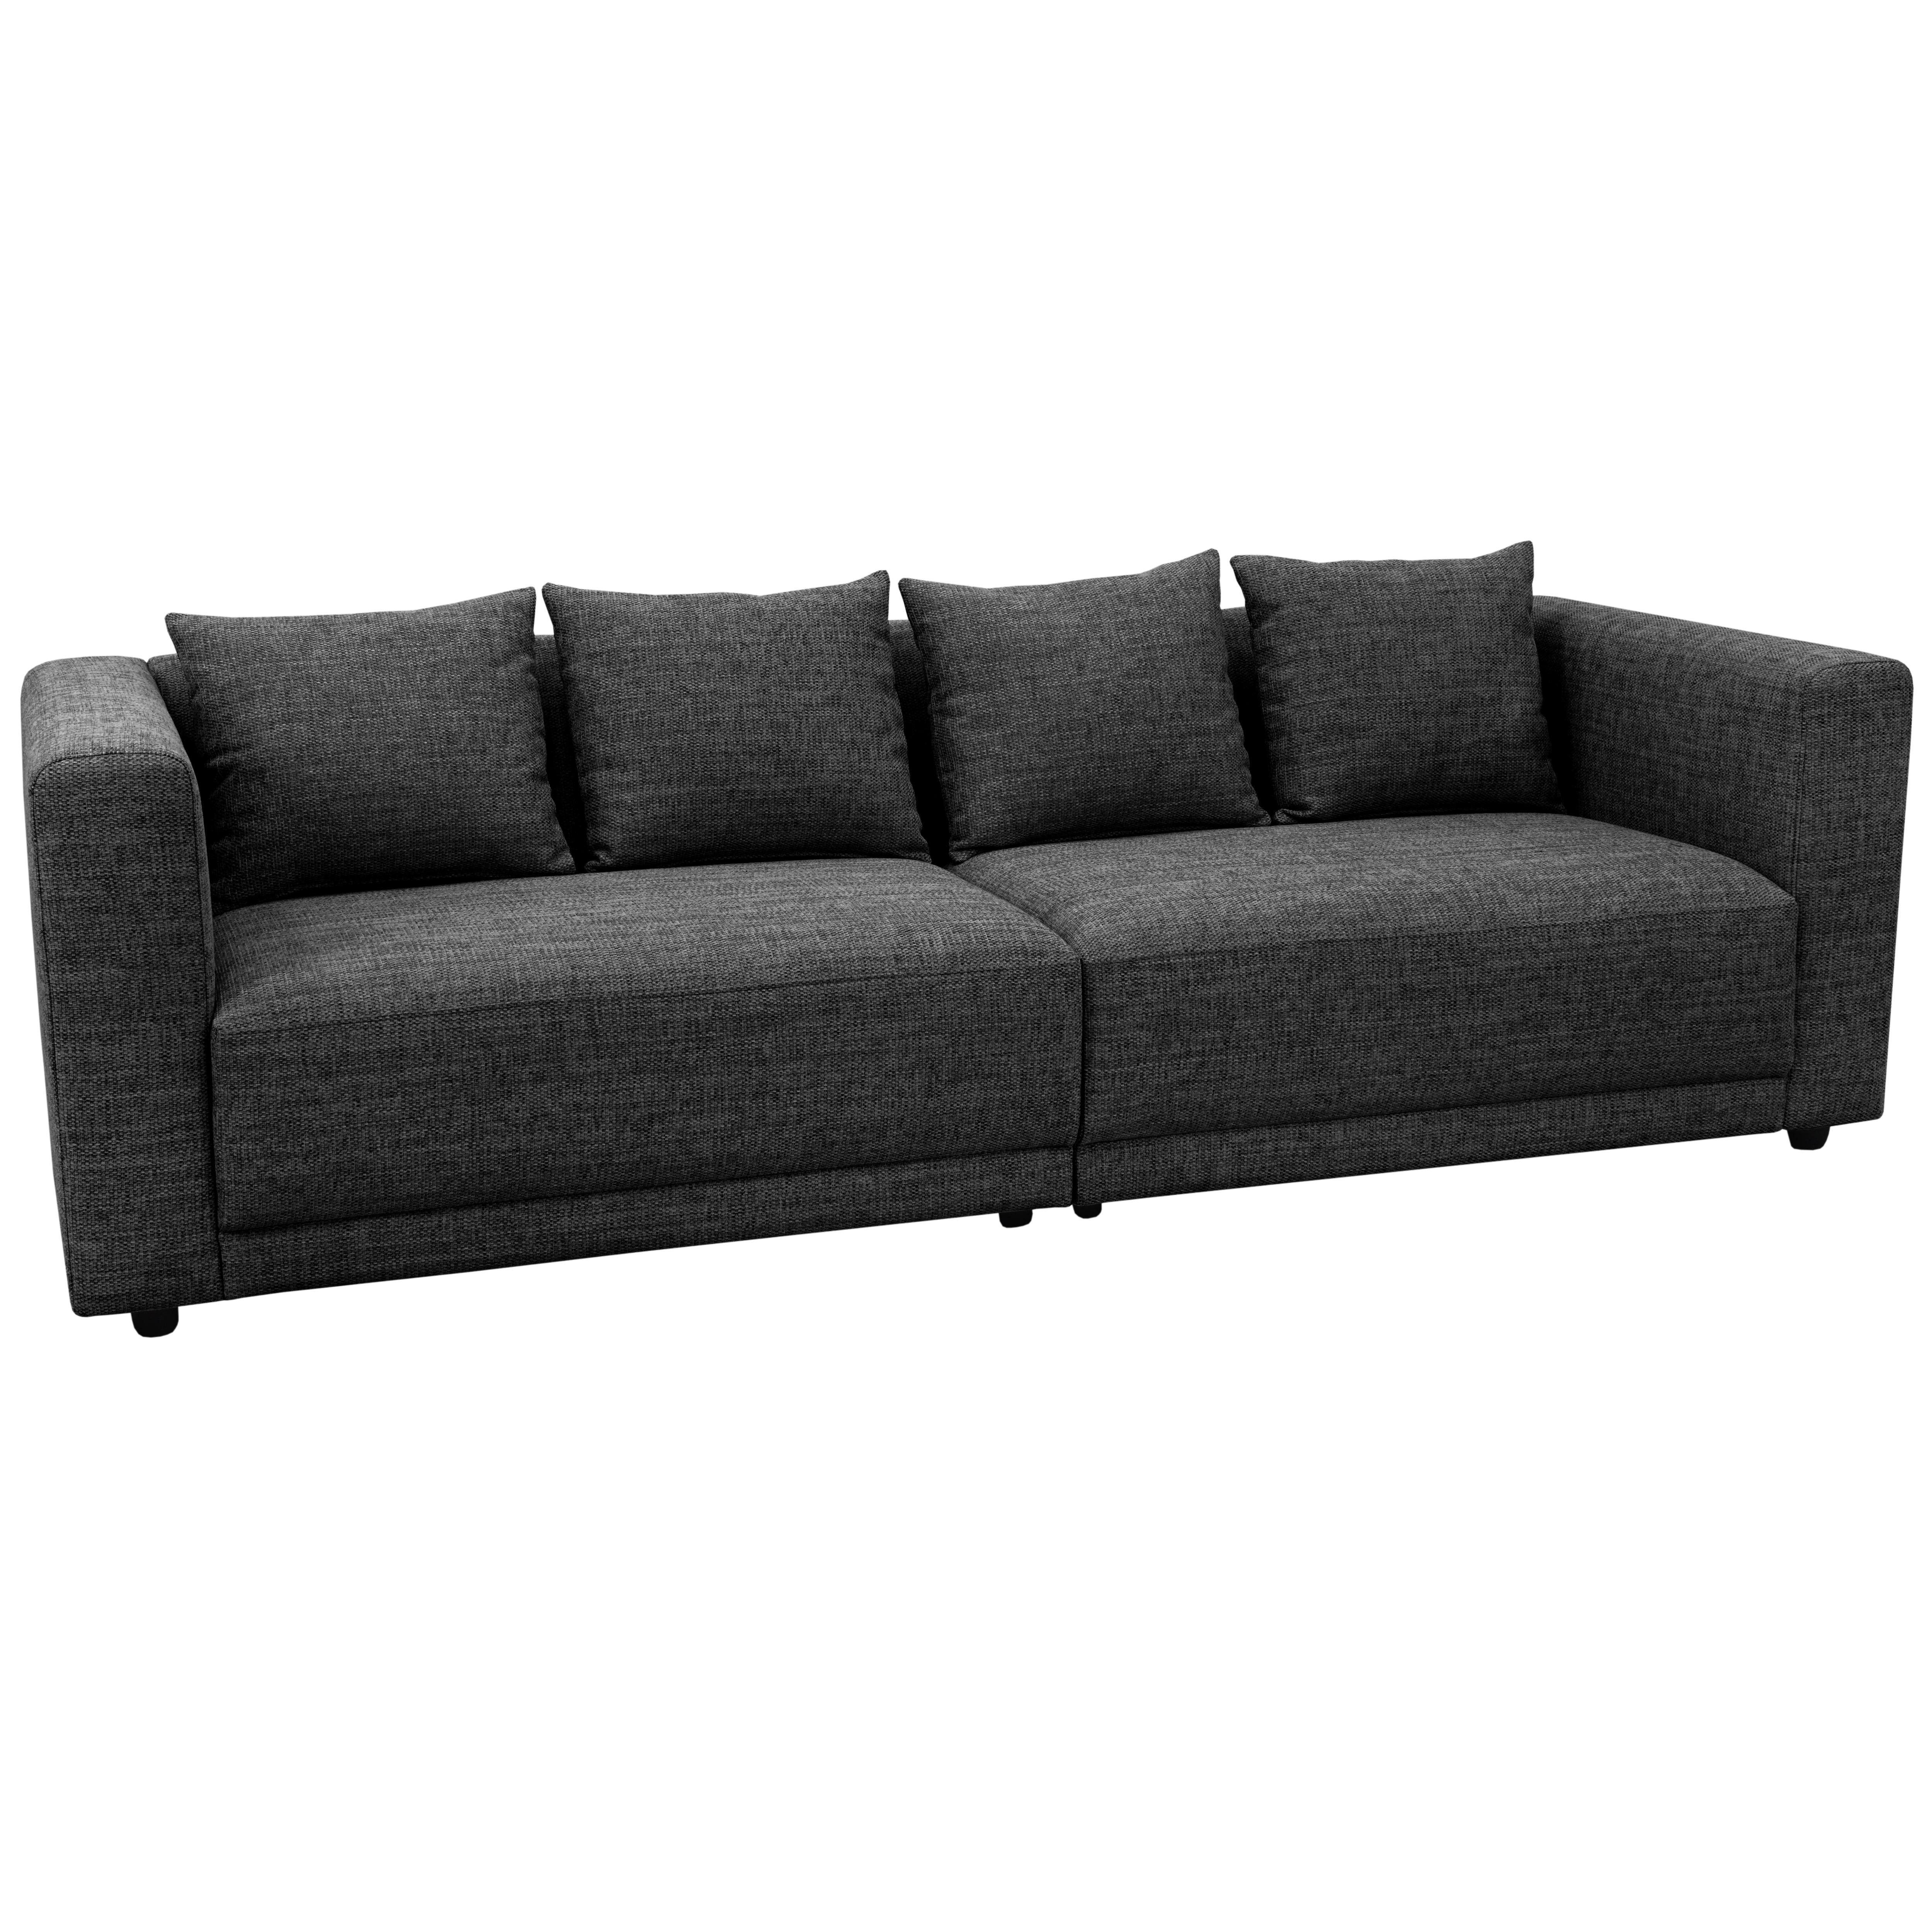 Trevi four seater sofa callida fabric charcoal